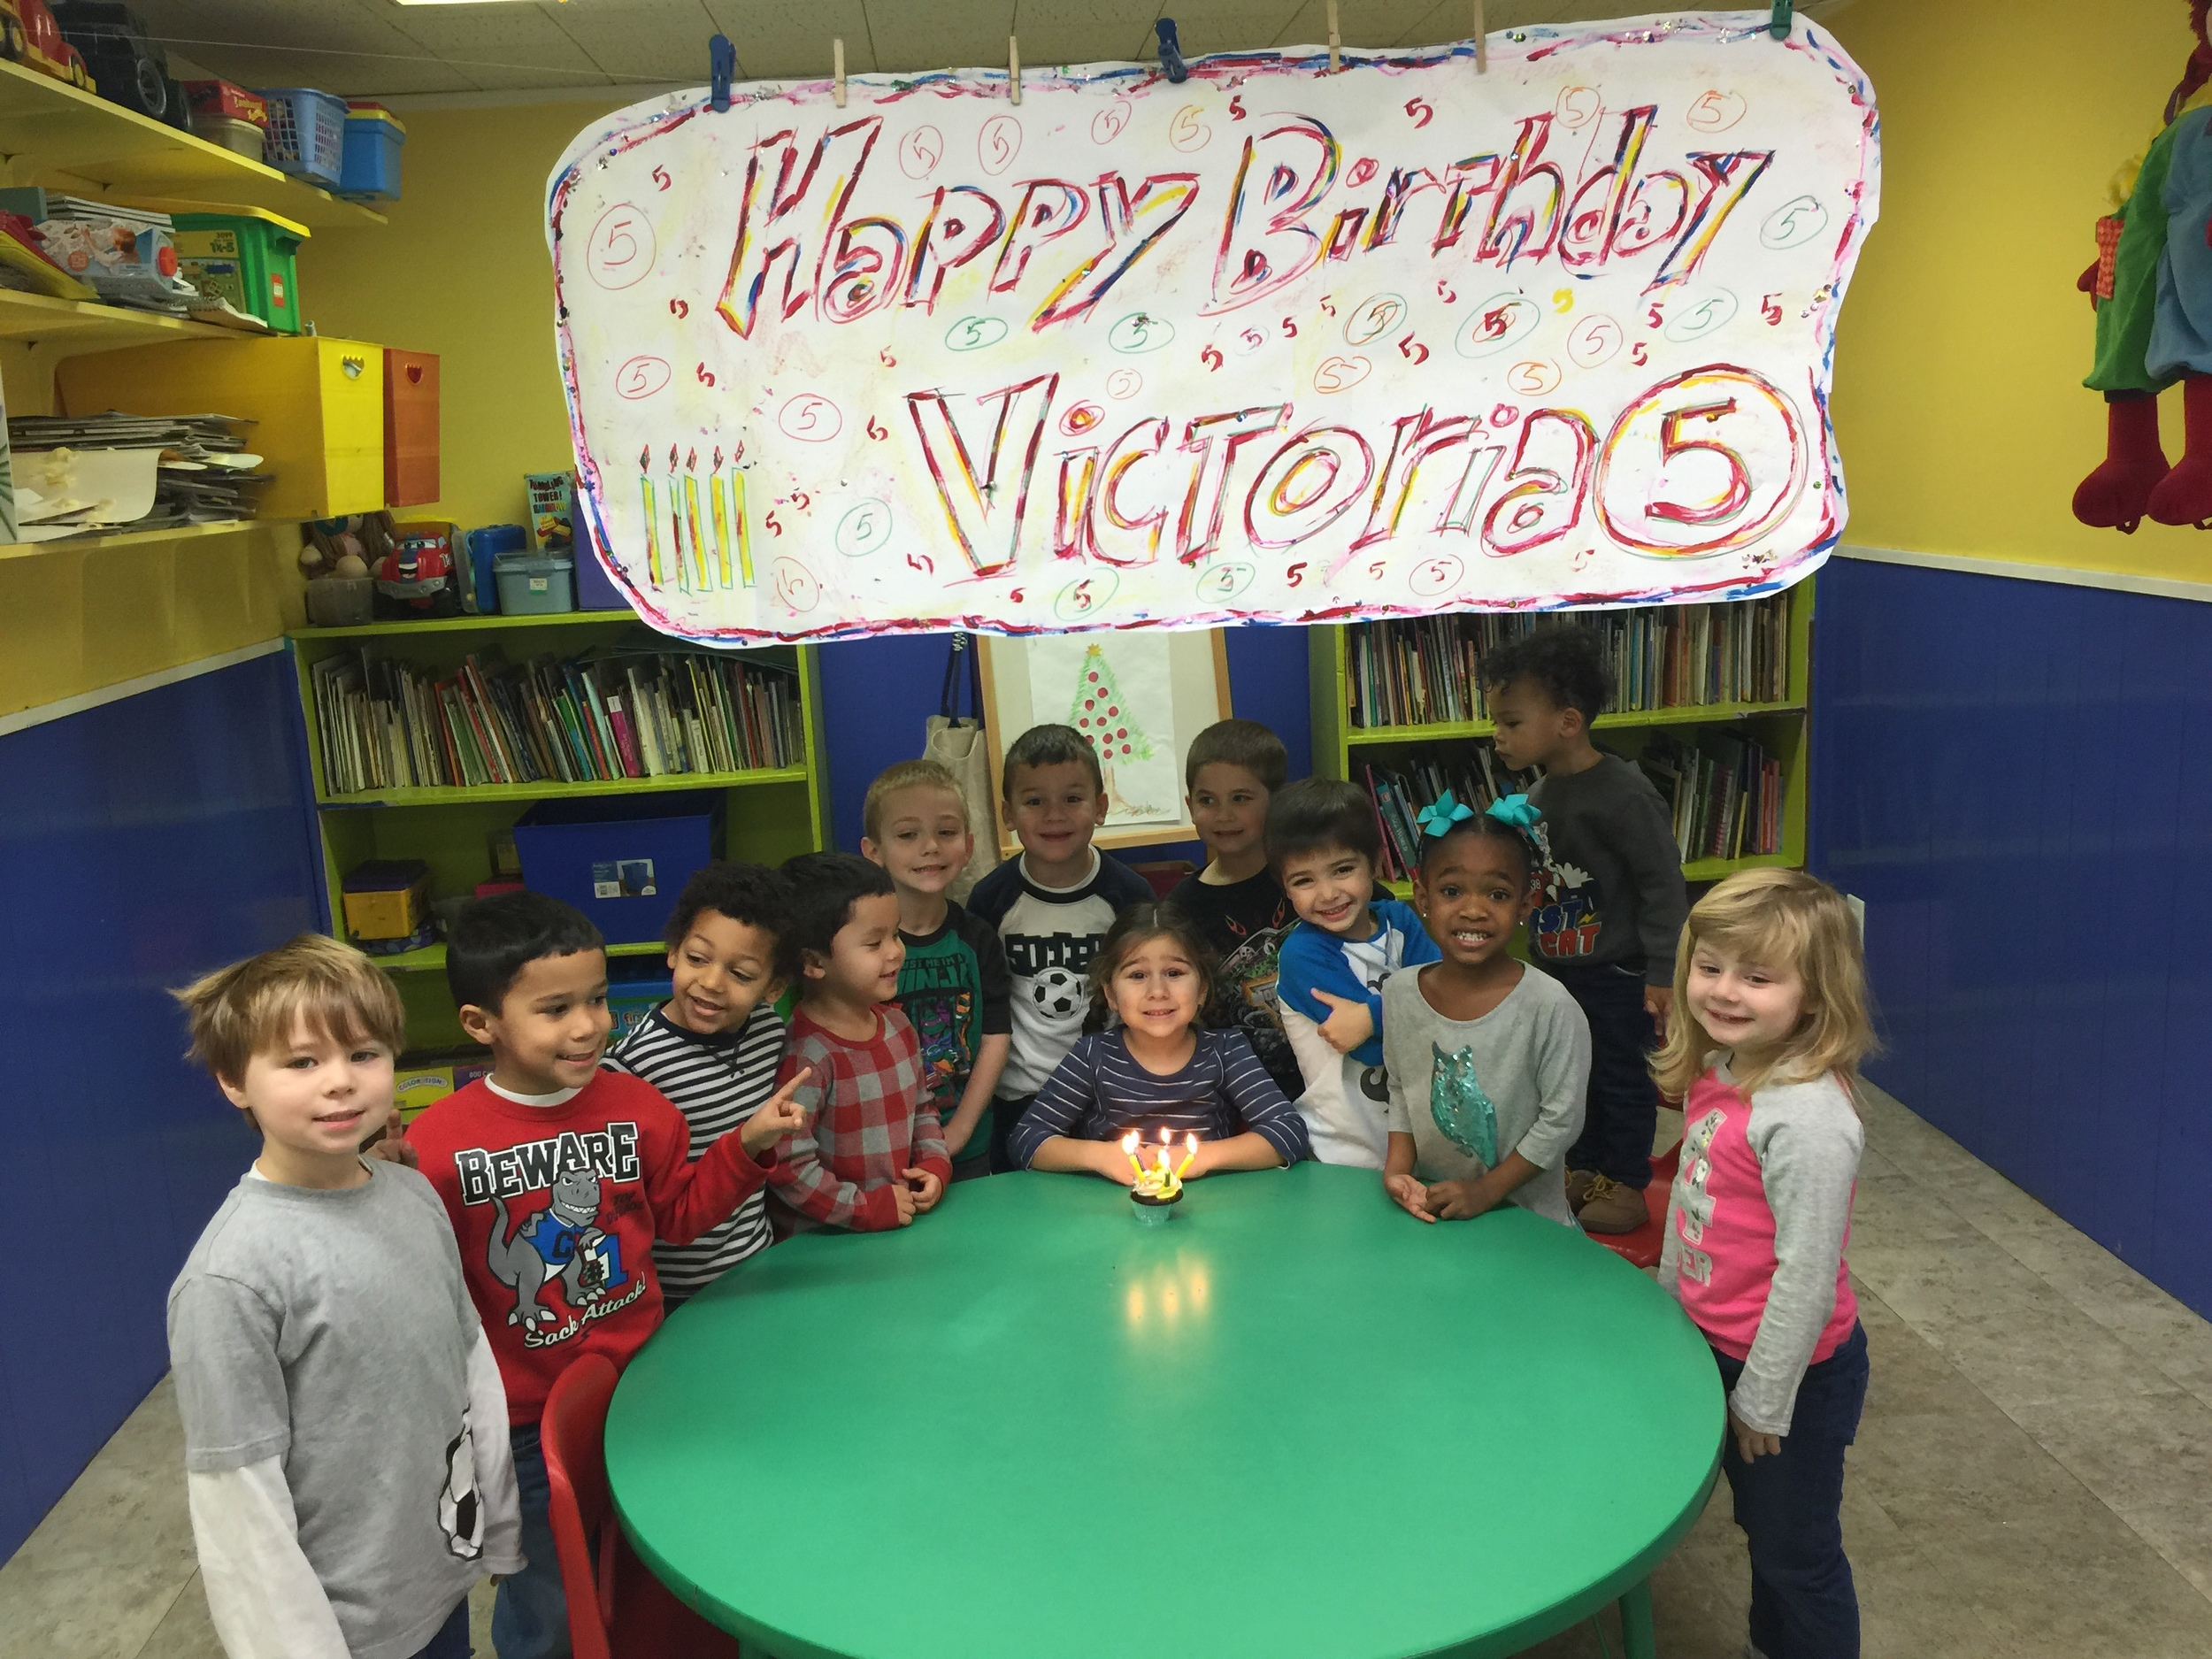 Happy Birthday Victoria!